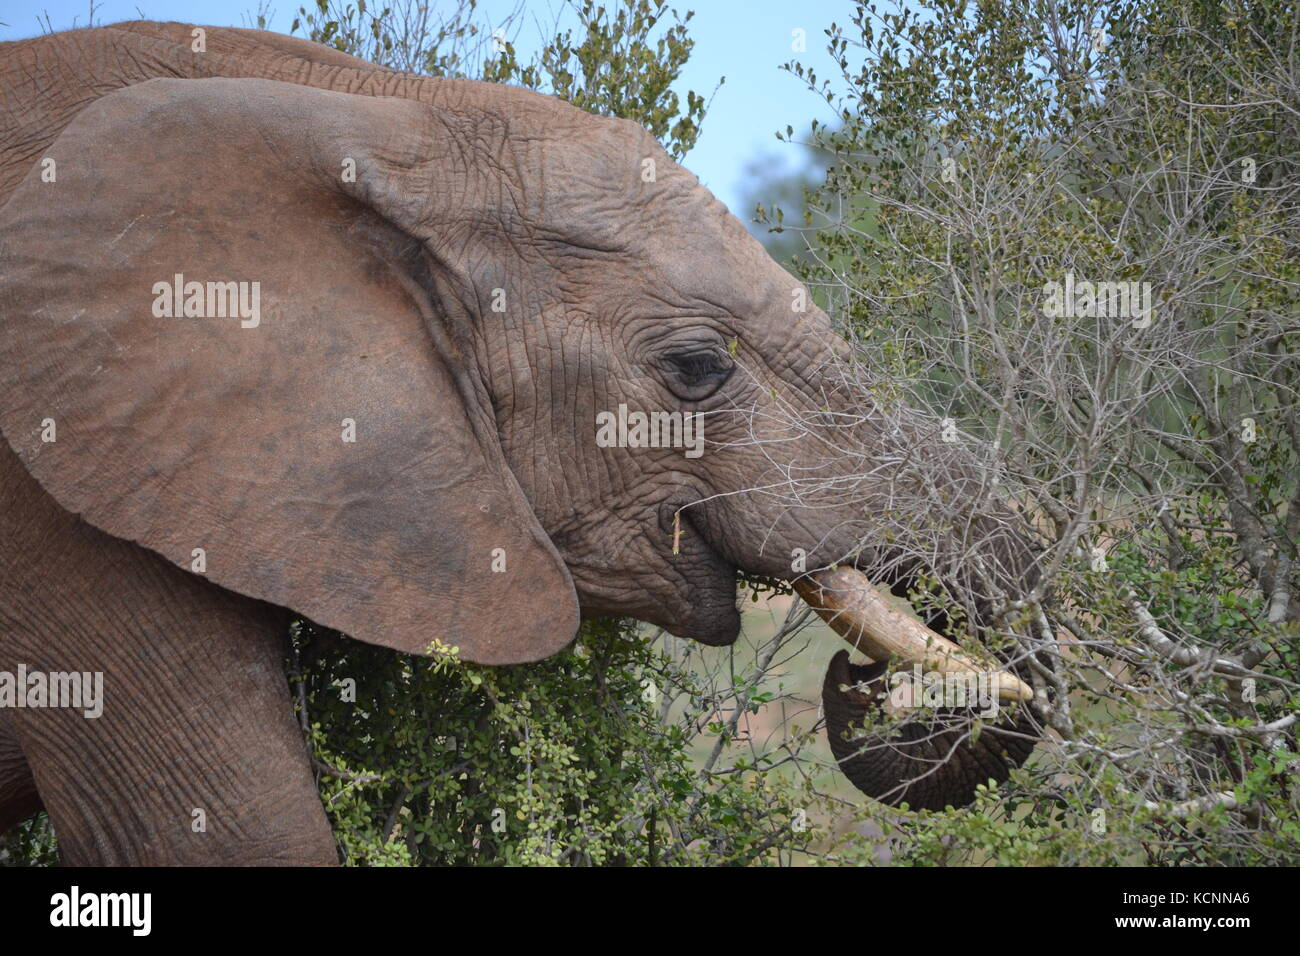 Afternoon snacks in the African Bushveld - Stock Image